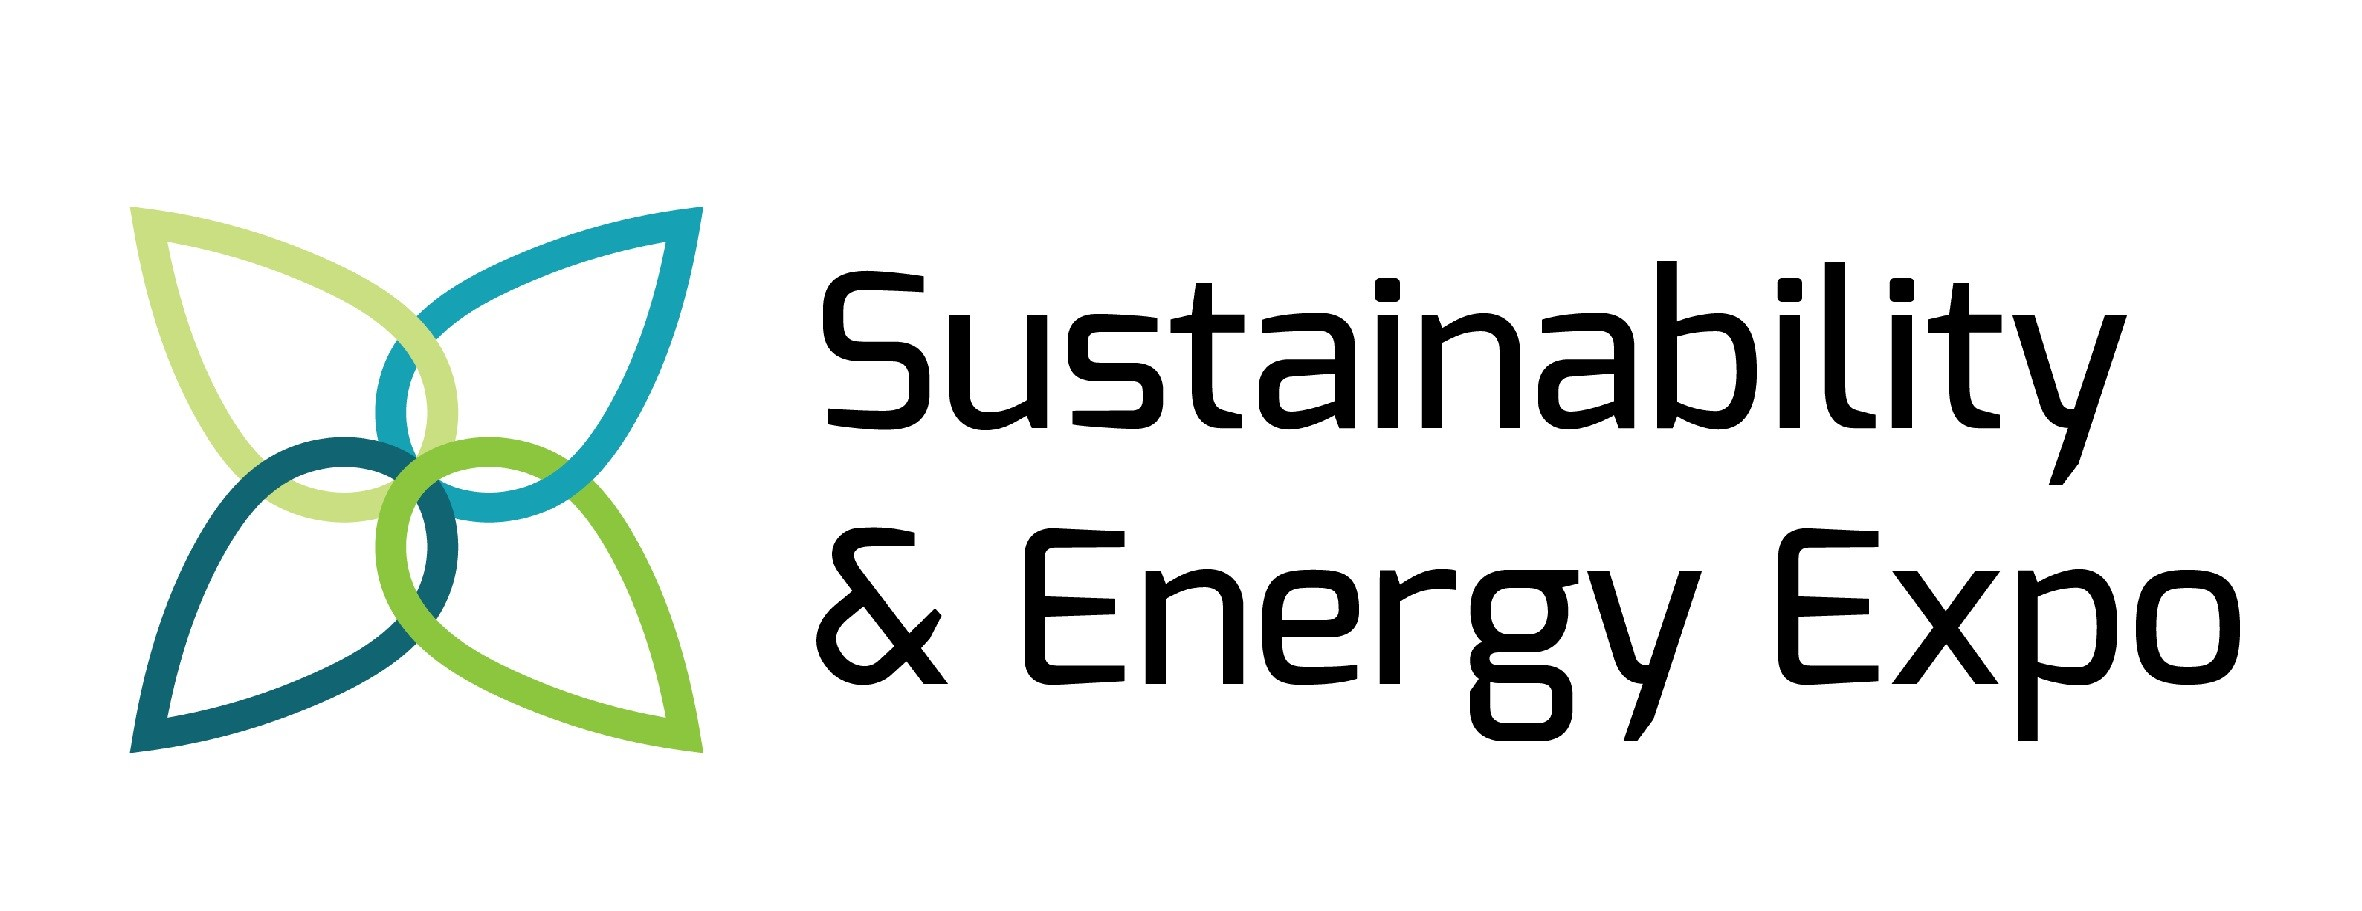 Sustainability and Energy Expo